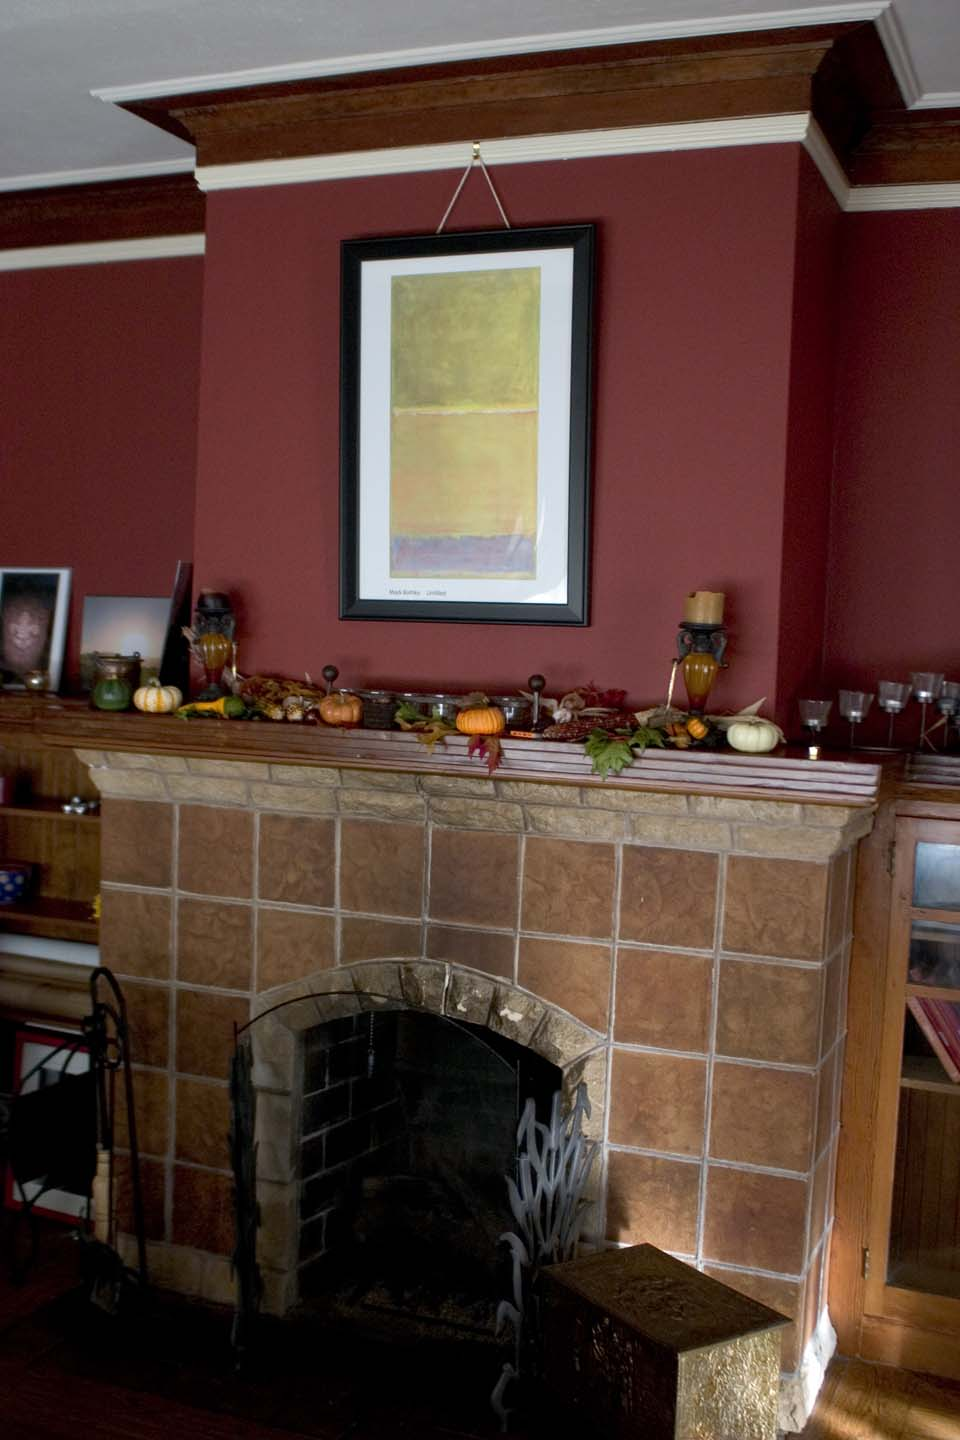 Library mantel with autumn decor the casa de kitty life for Casa mantel